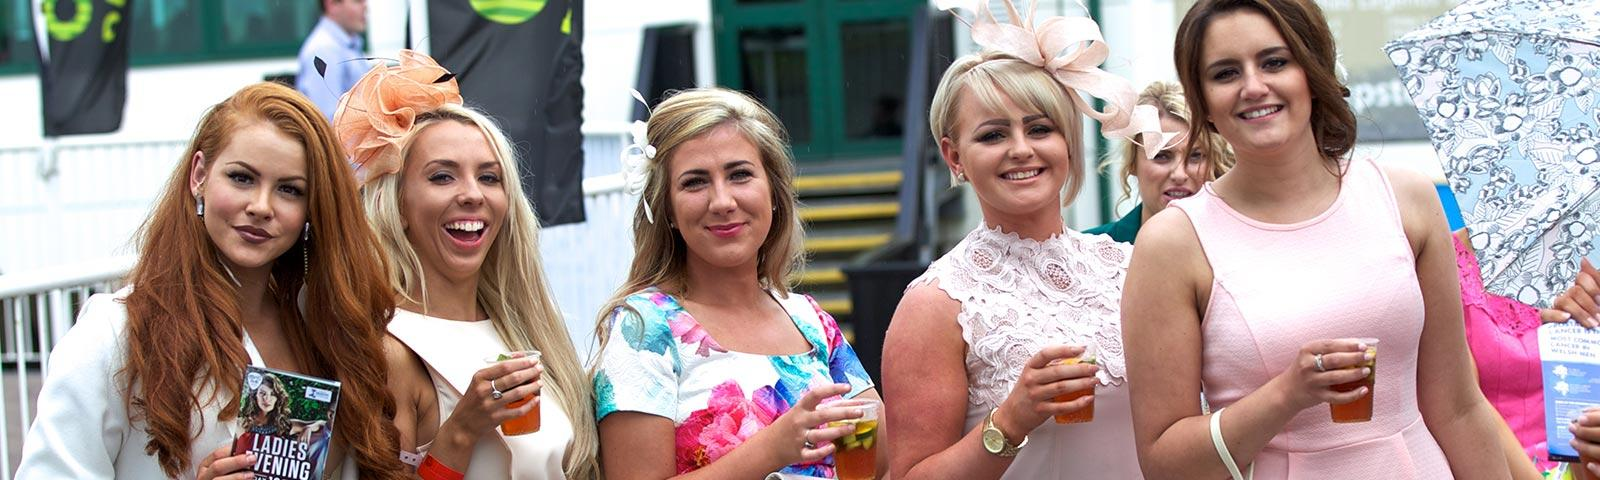 Group of ladies posing for a photo at a raceday at Chepstow Racecourse.